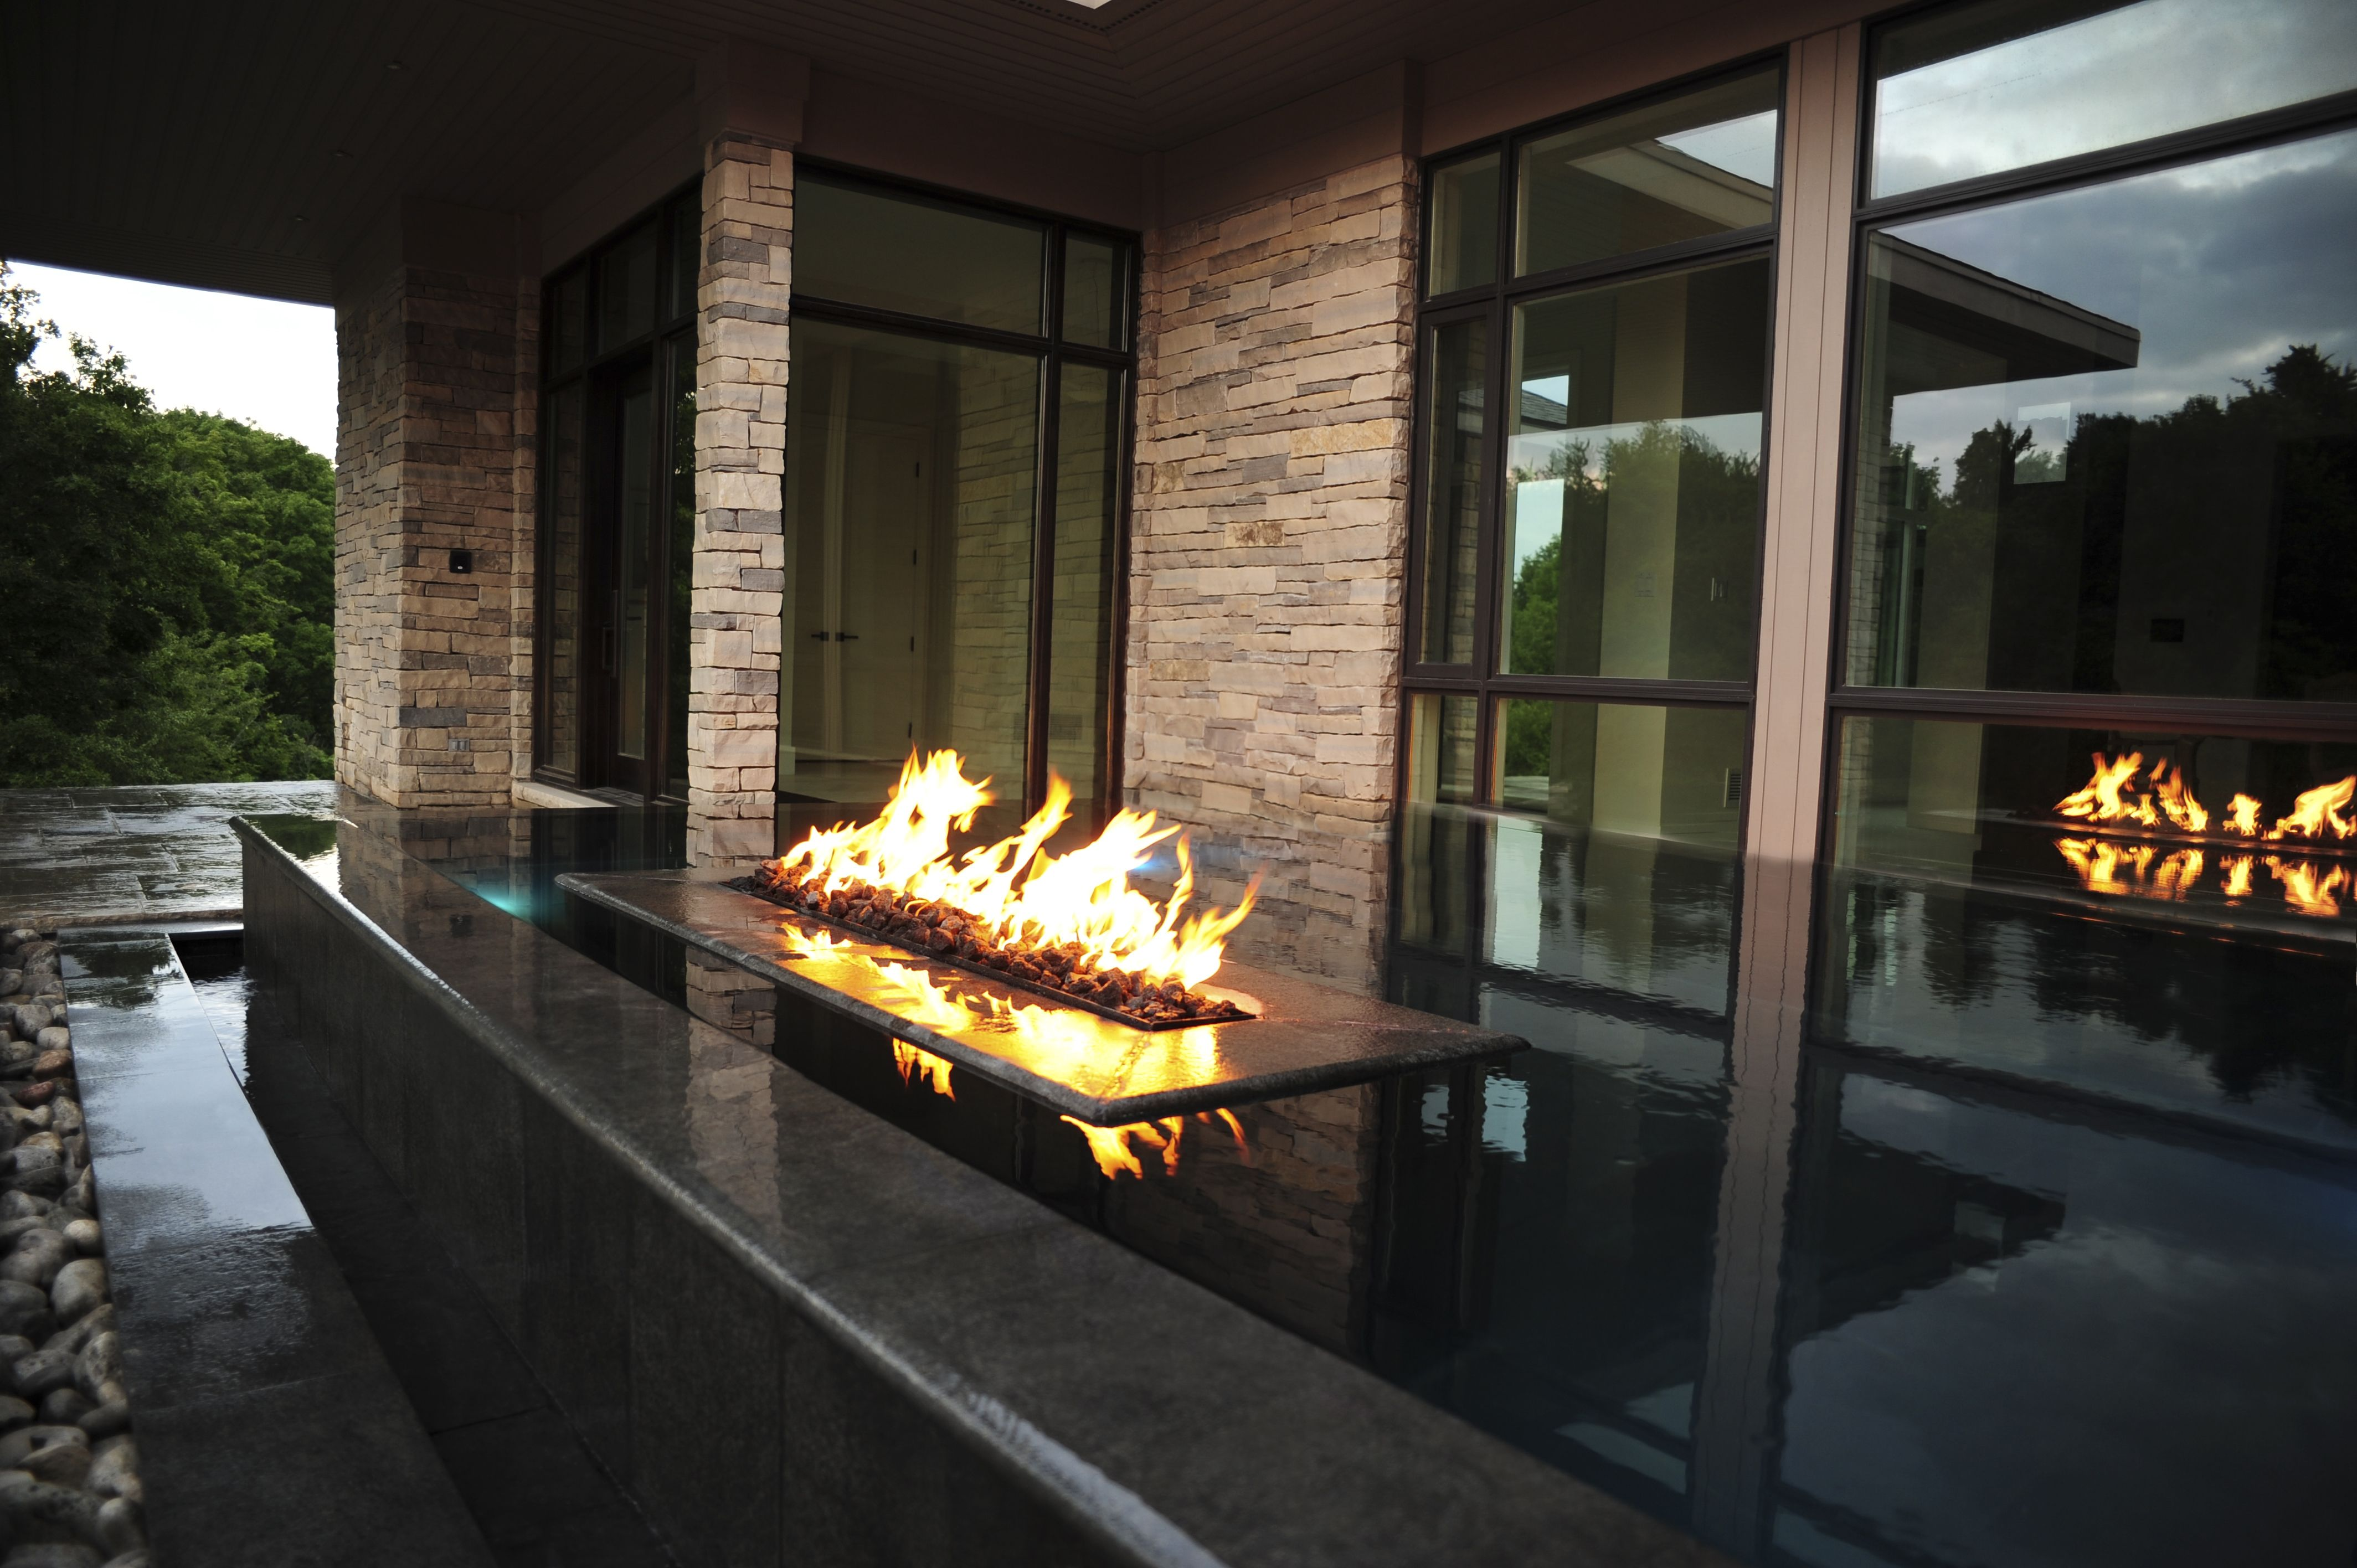 15f2cc69d297a4ef69f1712b042950b6 Top Result 50 Awesome Outdoor Fire Features Gallery 2018 Jdt4